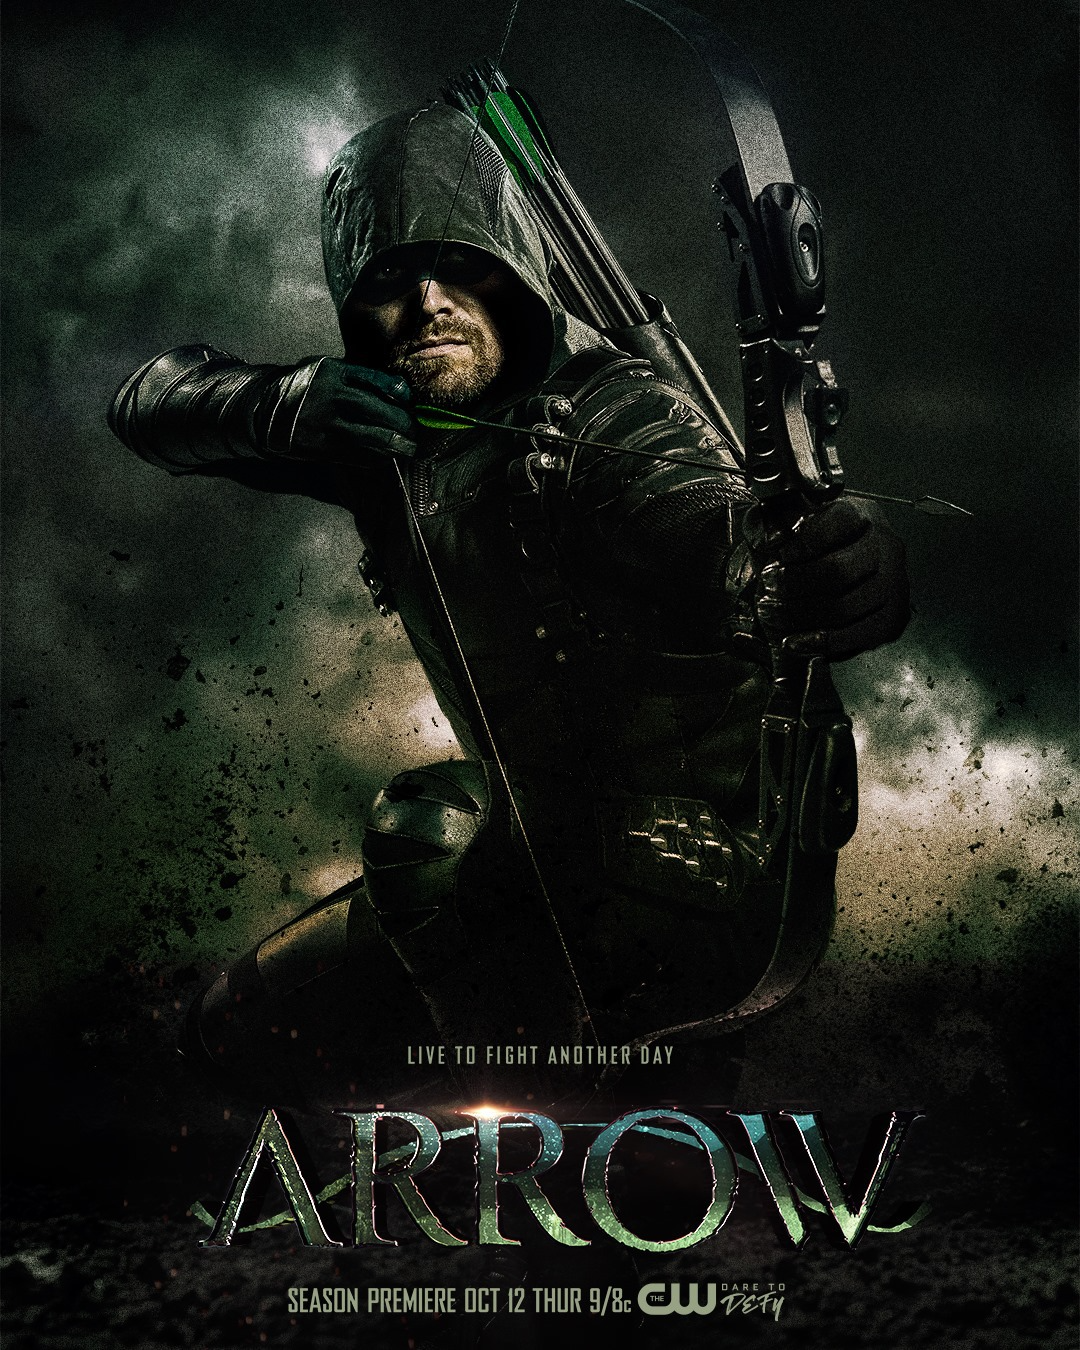 Arrow season 6 poster - Live to Fight Another Day.png